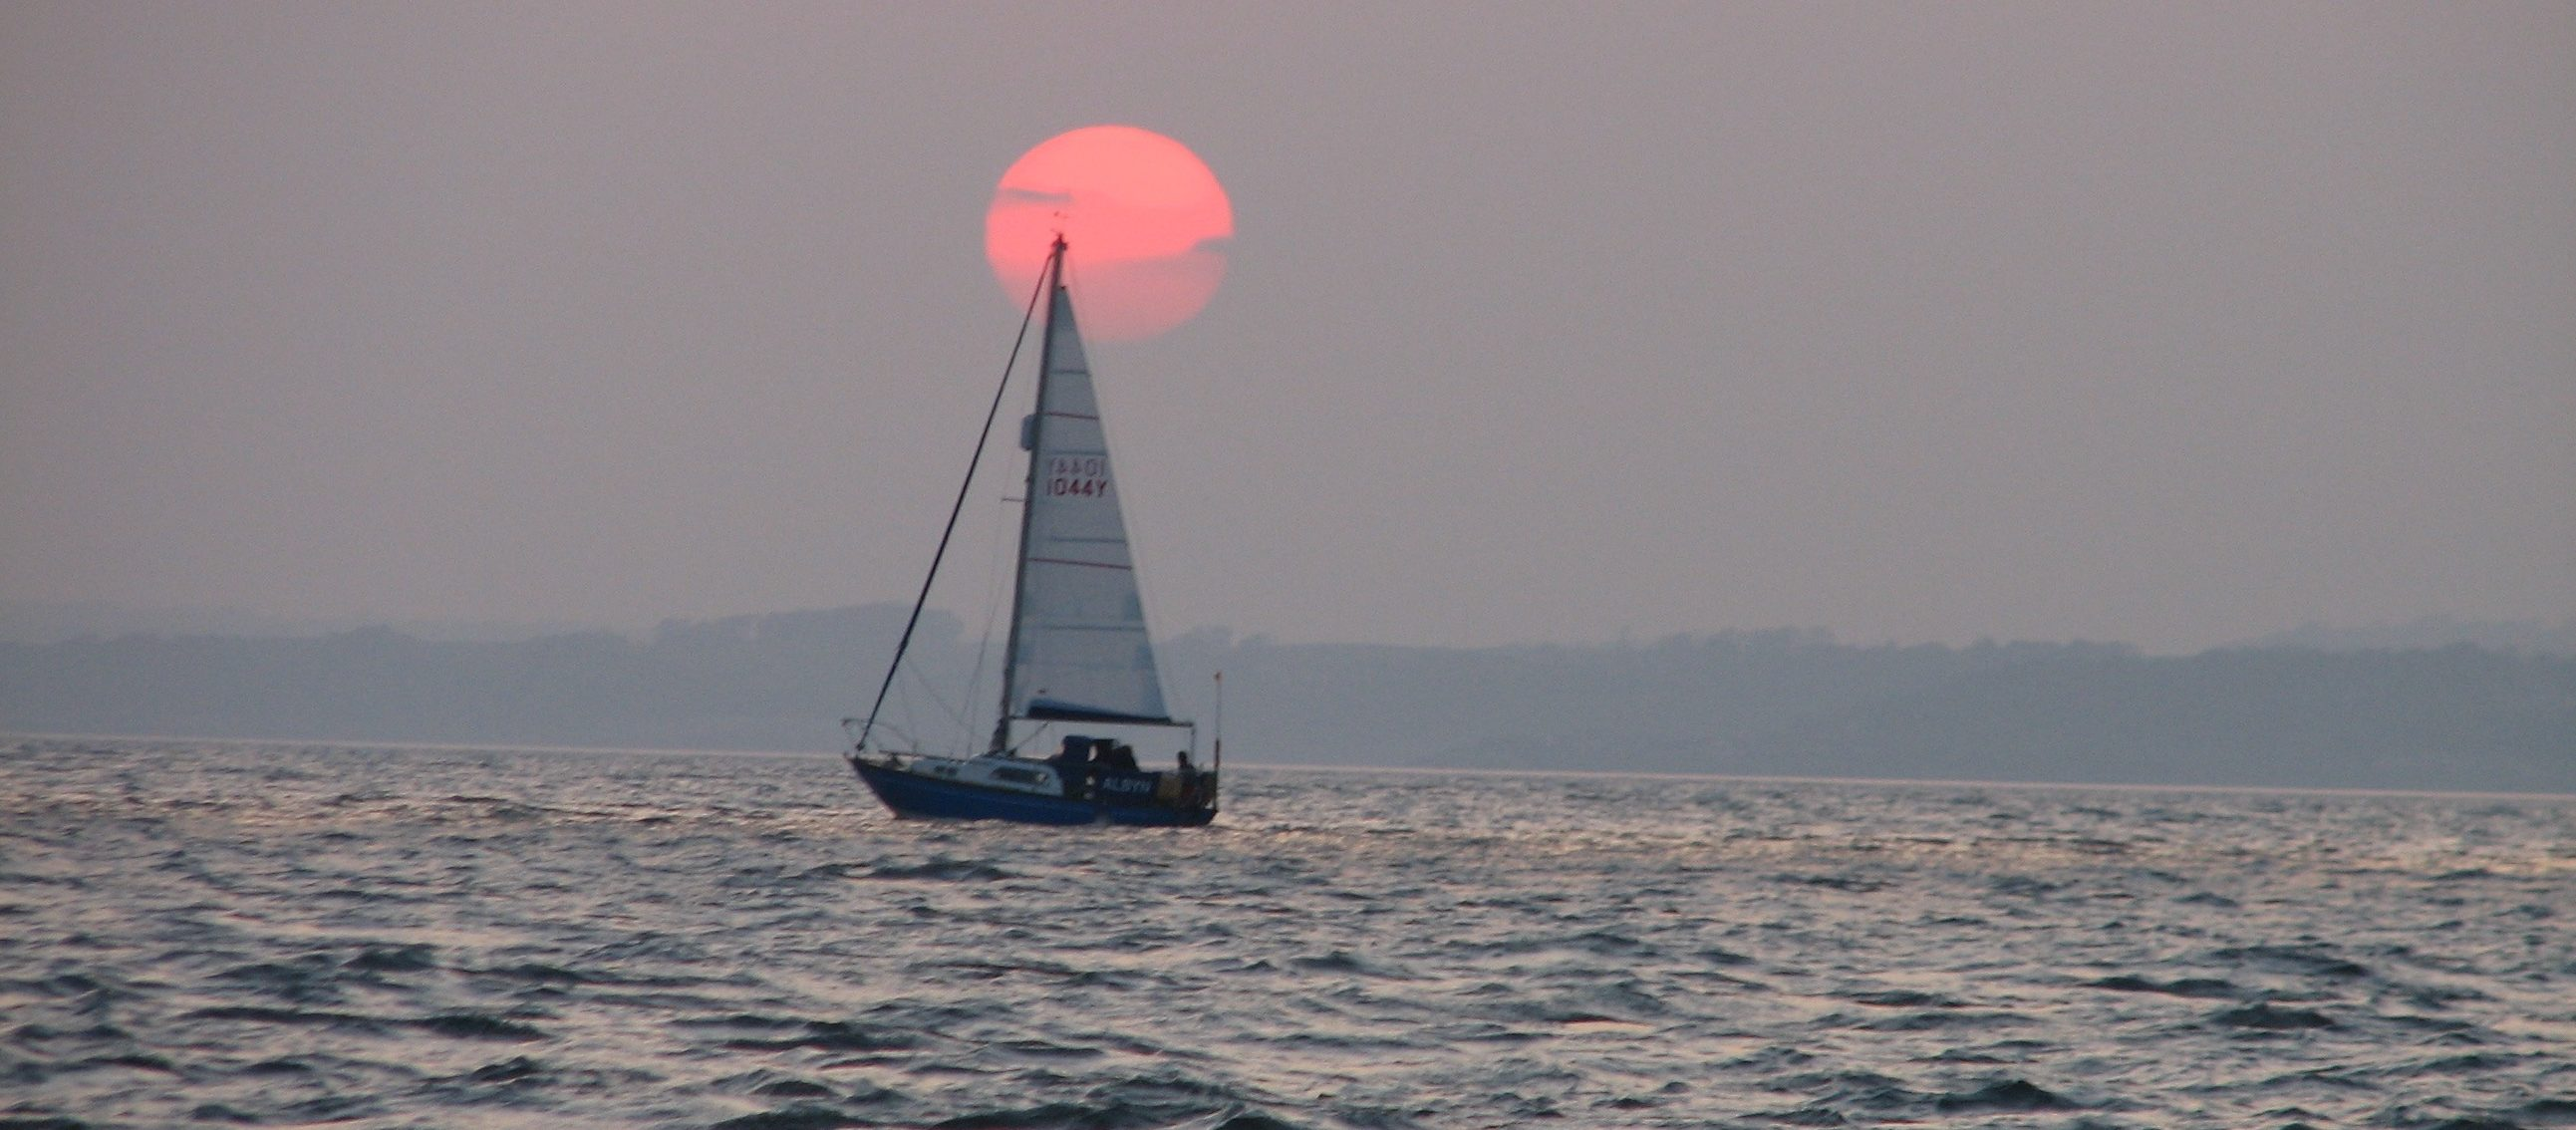 Sailing into the sunset... photo by Adrian Shield